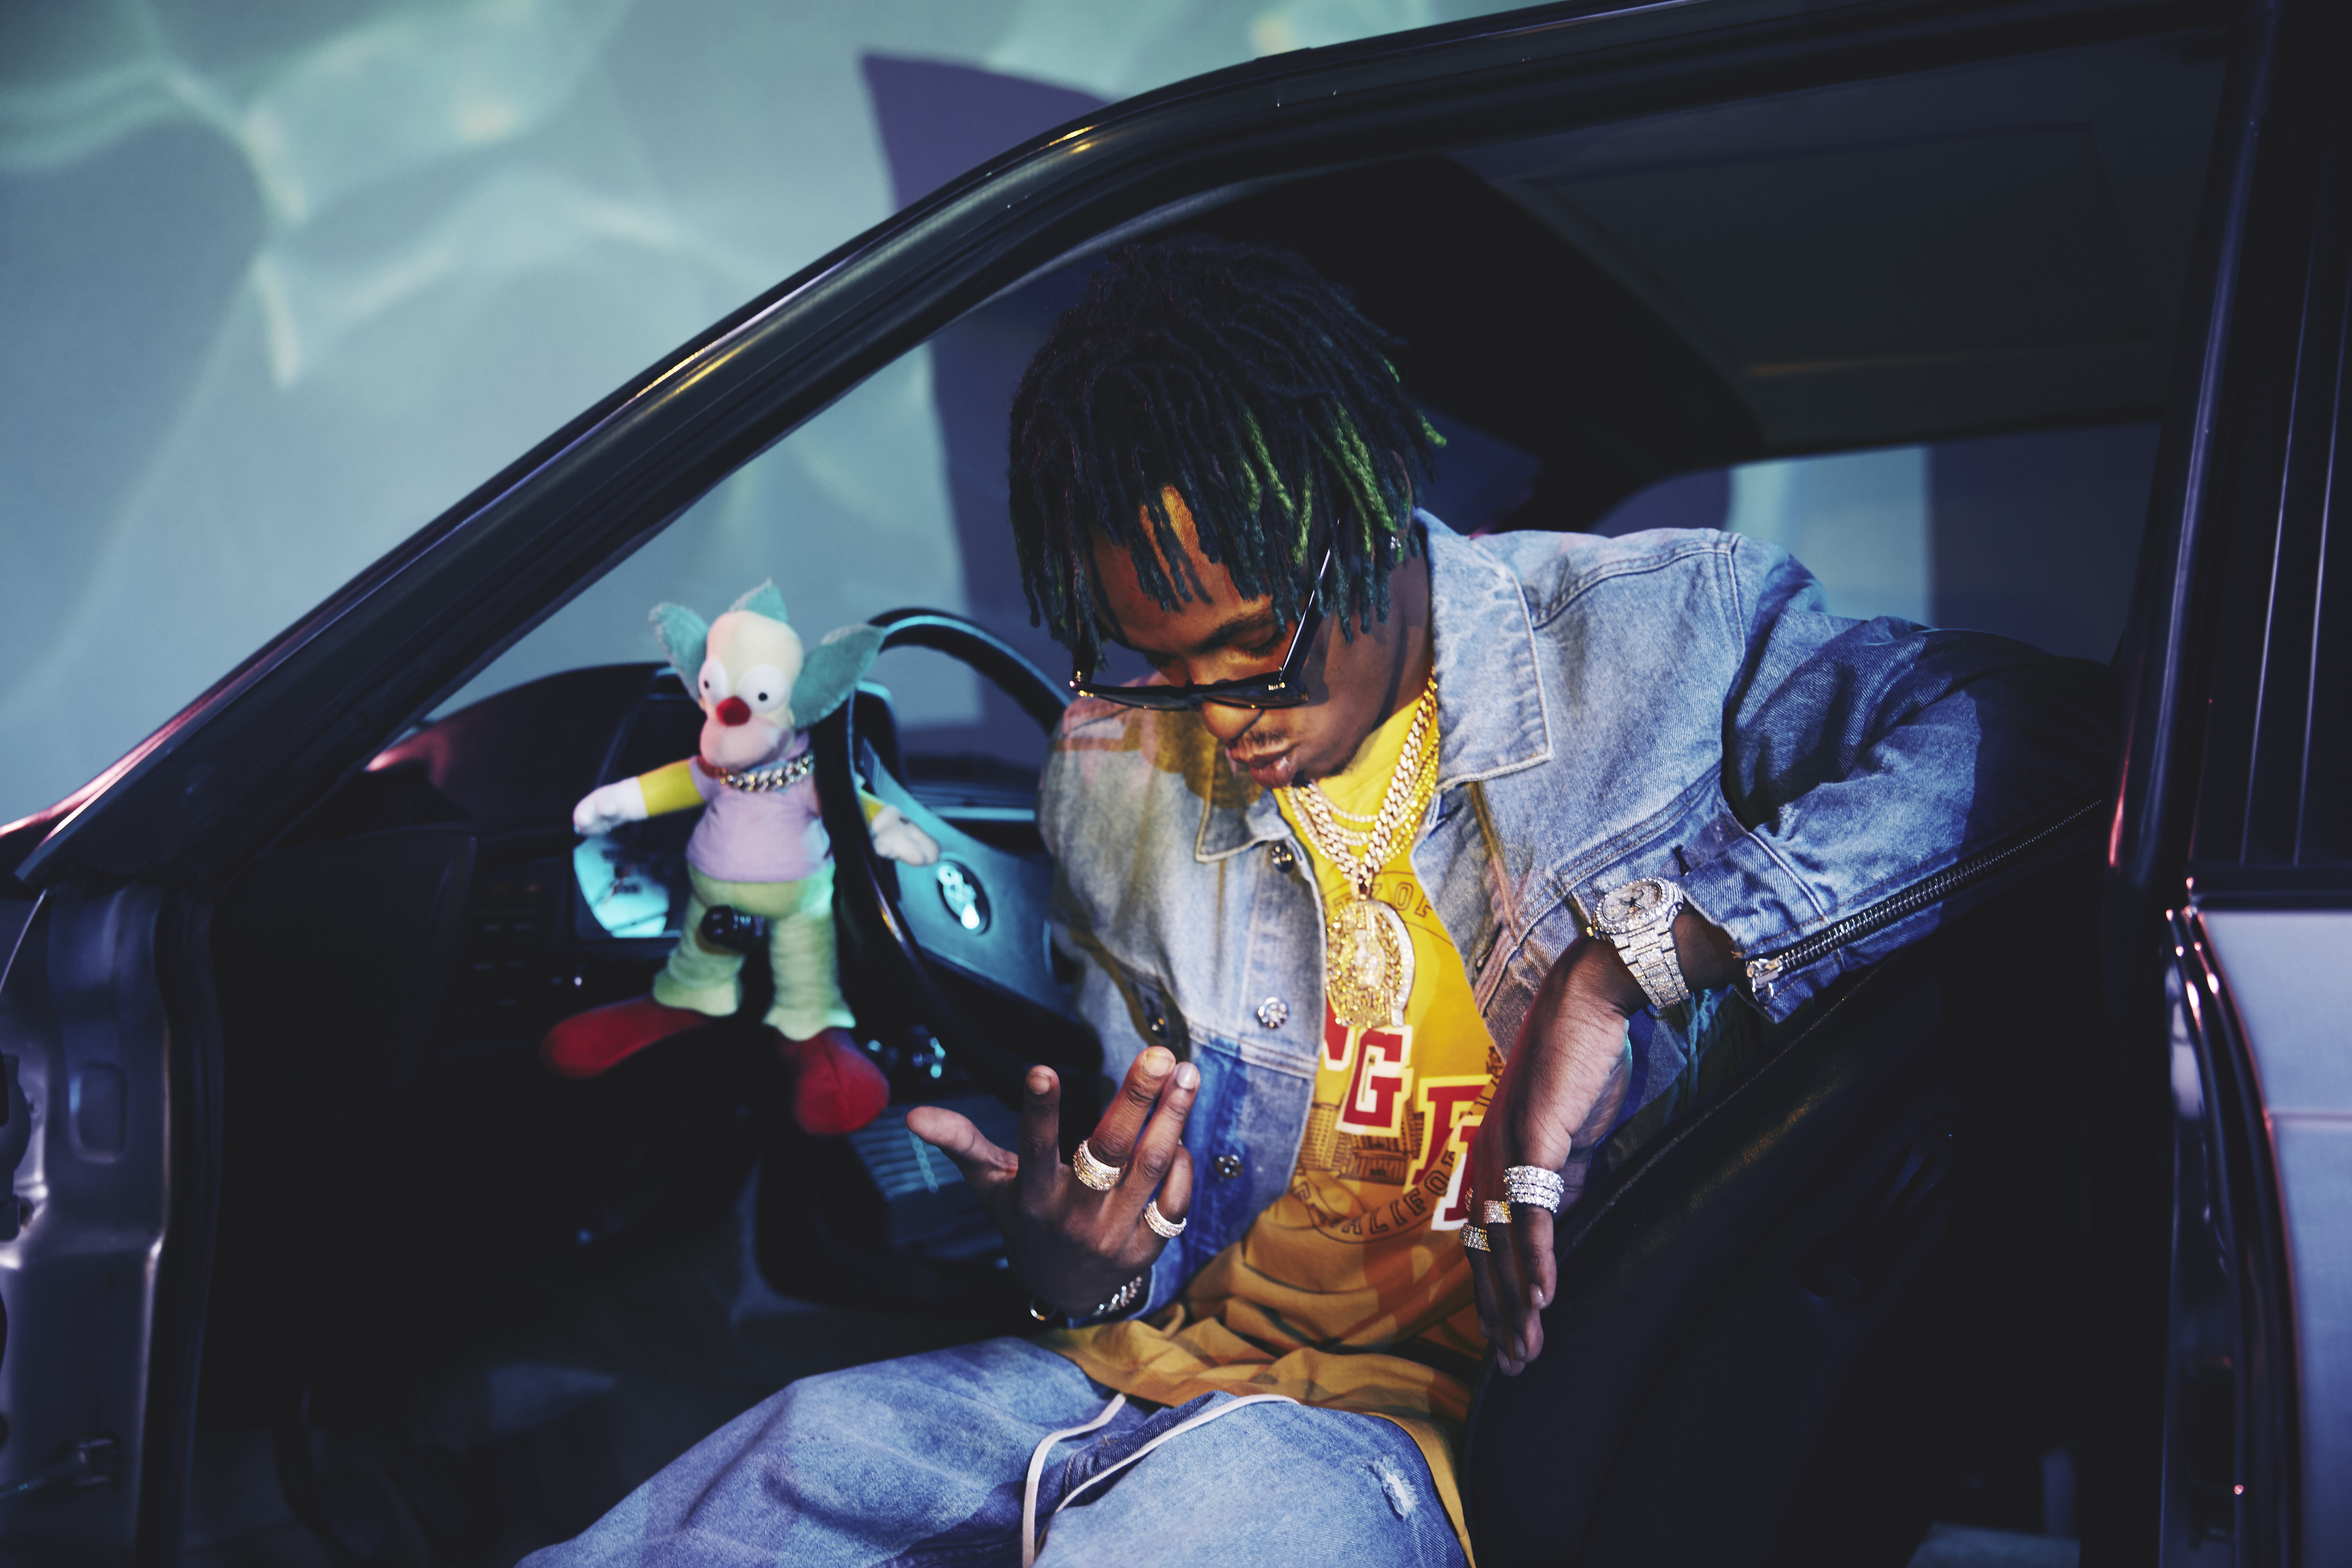 Mr. Completely x PacSun 'MRCLA' campaign featuring Rich the Kid